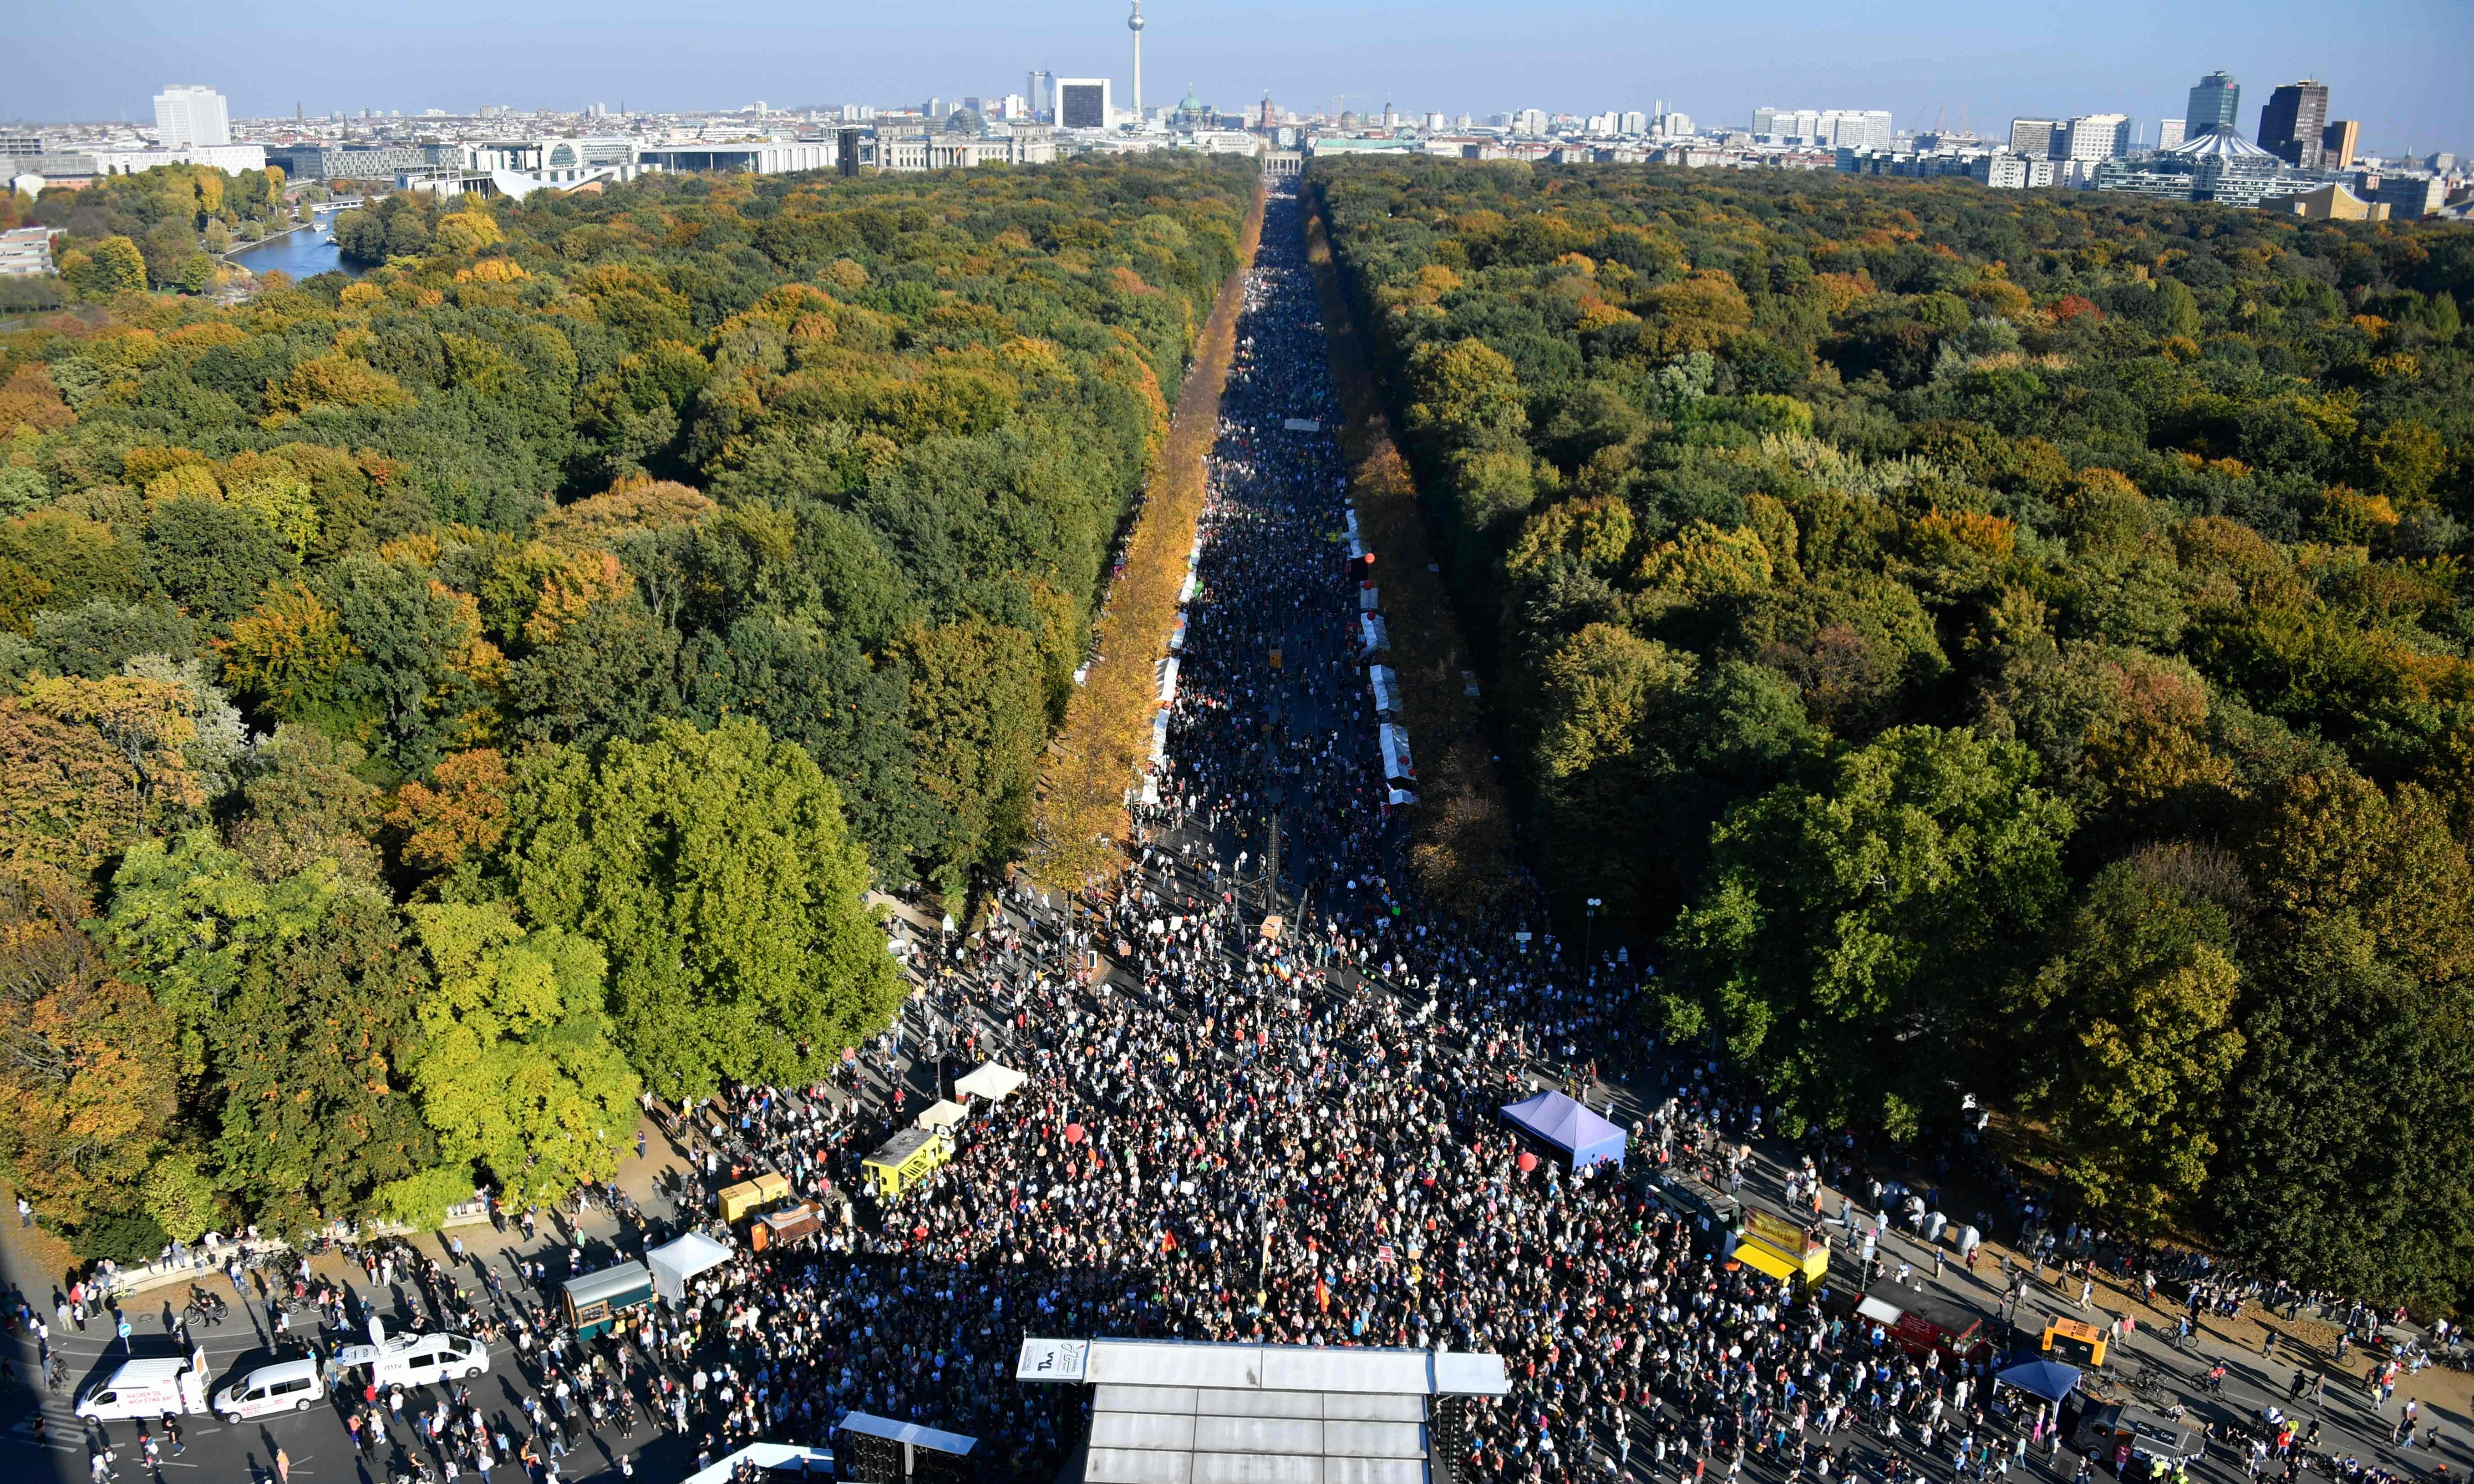 German march against far right draws huge crowds in Berlin